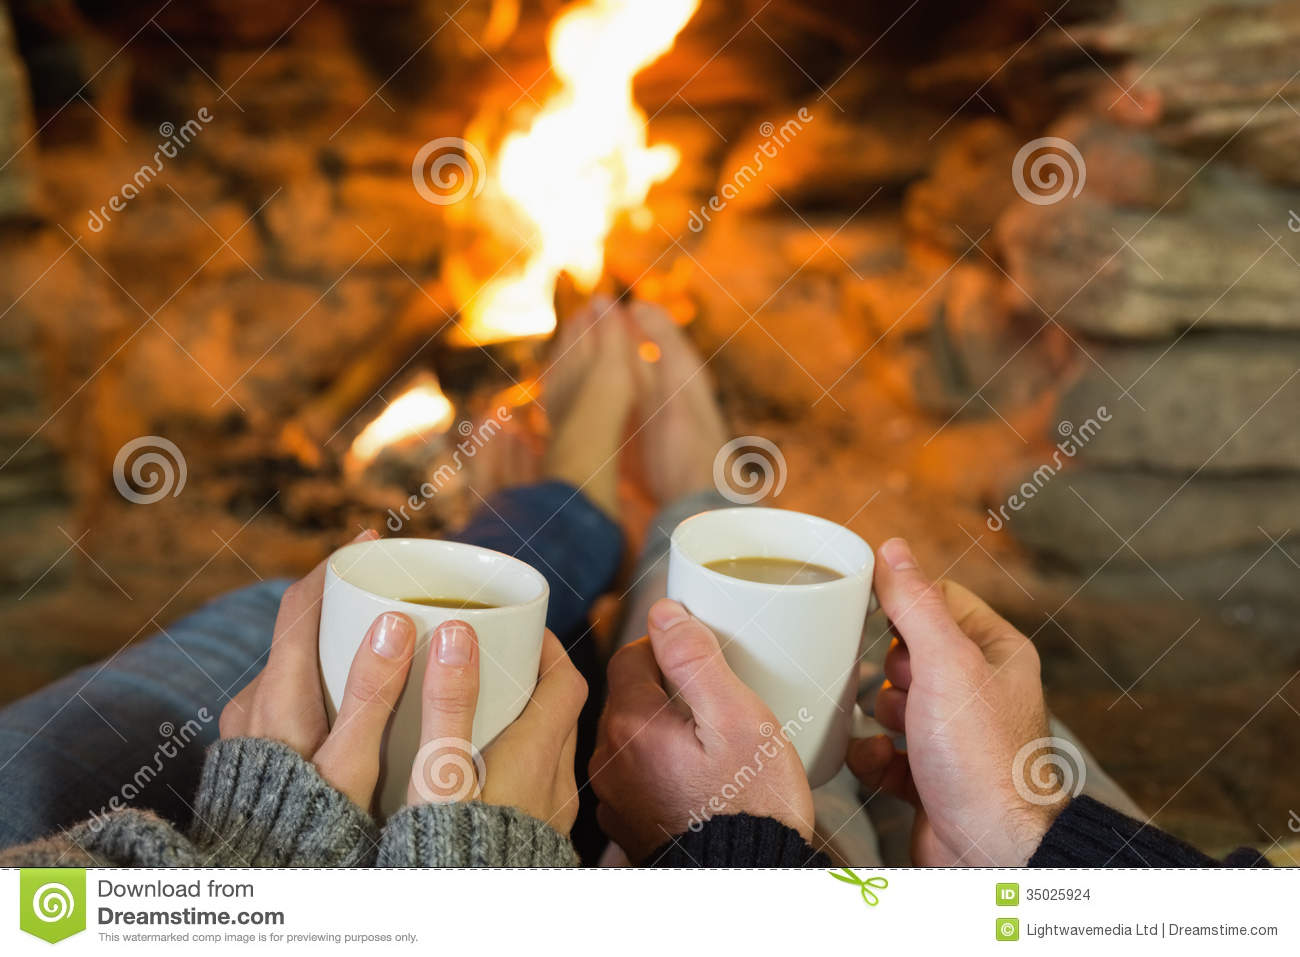 Couple Relaxing In Front Of Fireplace Man Looking At Woman Stock Hands Holding Coffee Cups In Front Of Lit Fireplace Stock